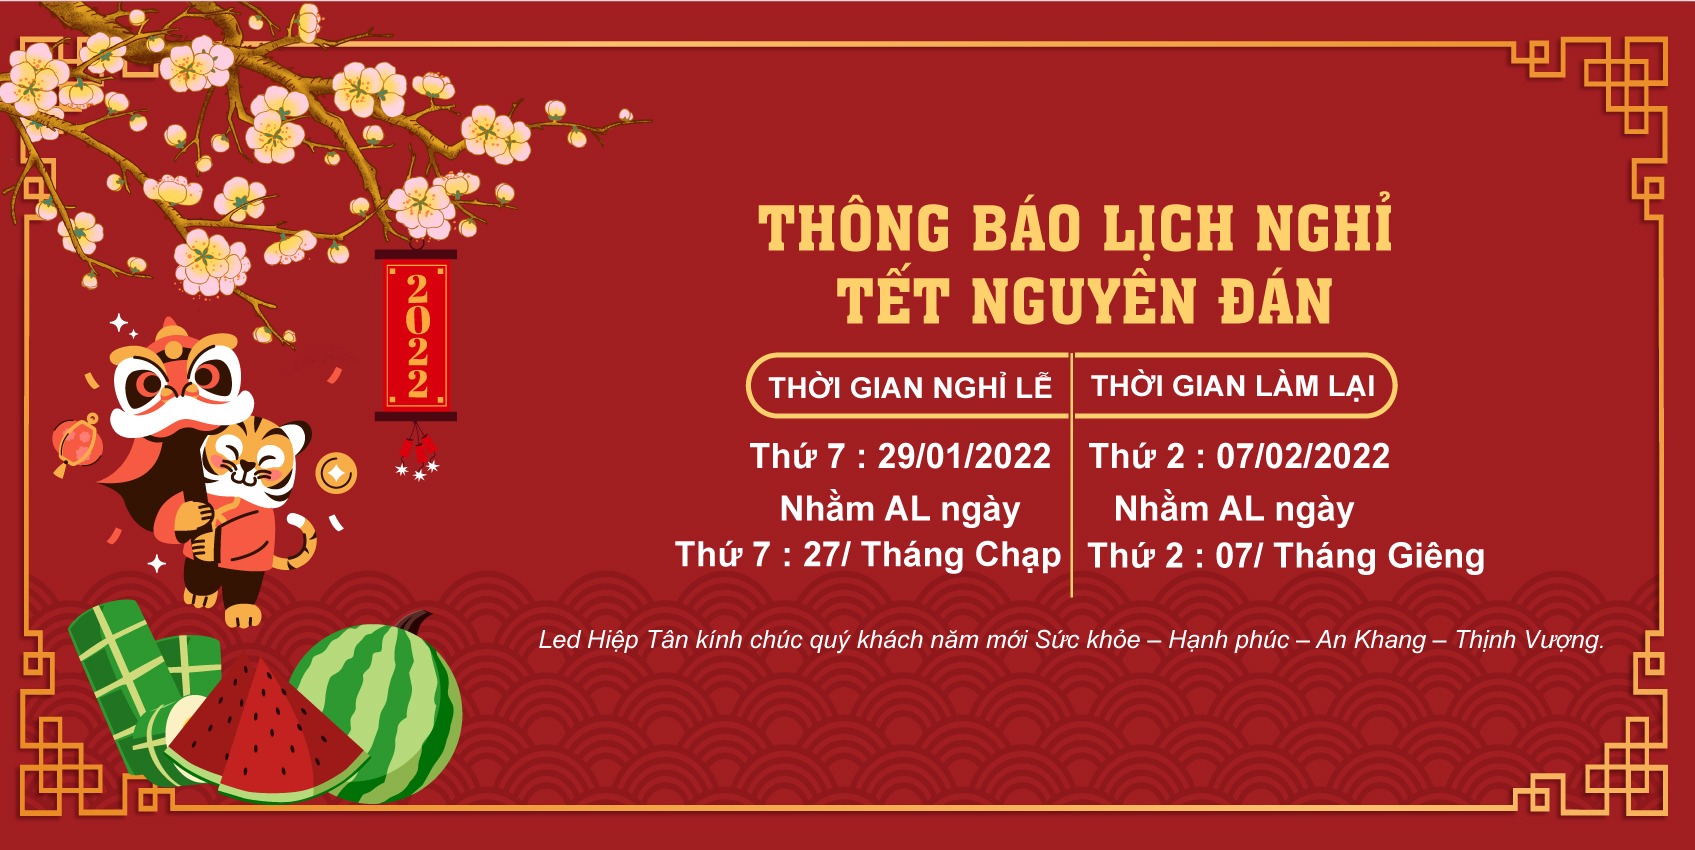 https://ledhieptan.vn/products/card-hd-e66